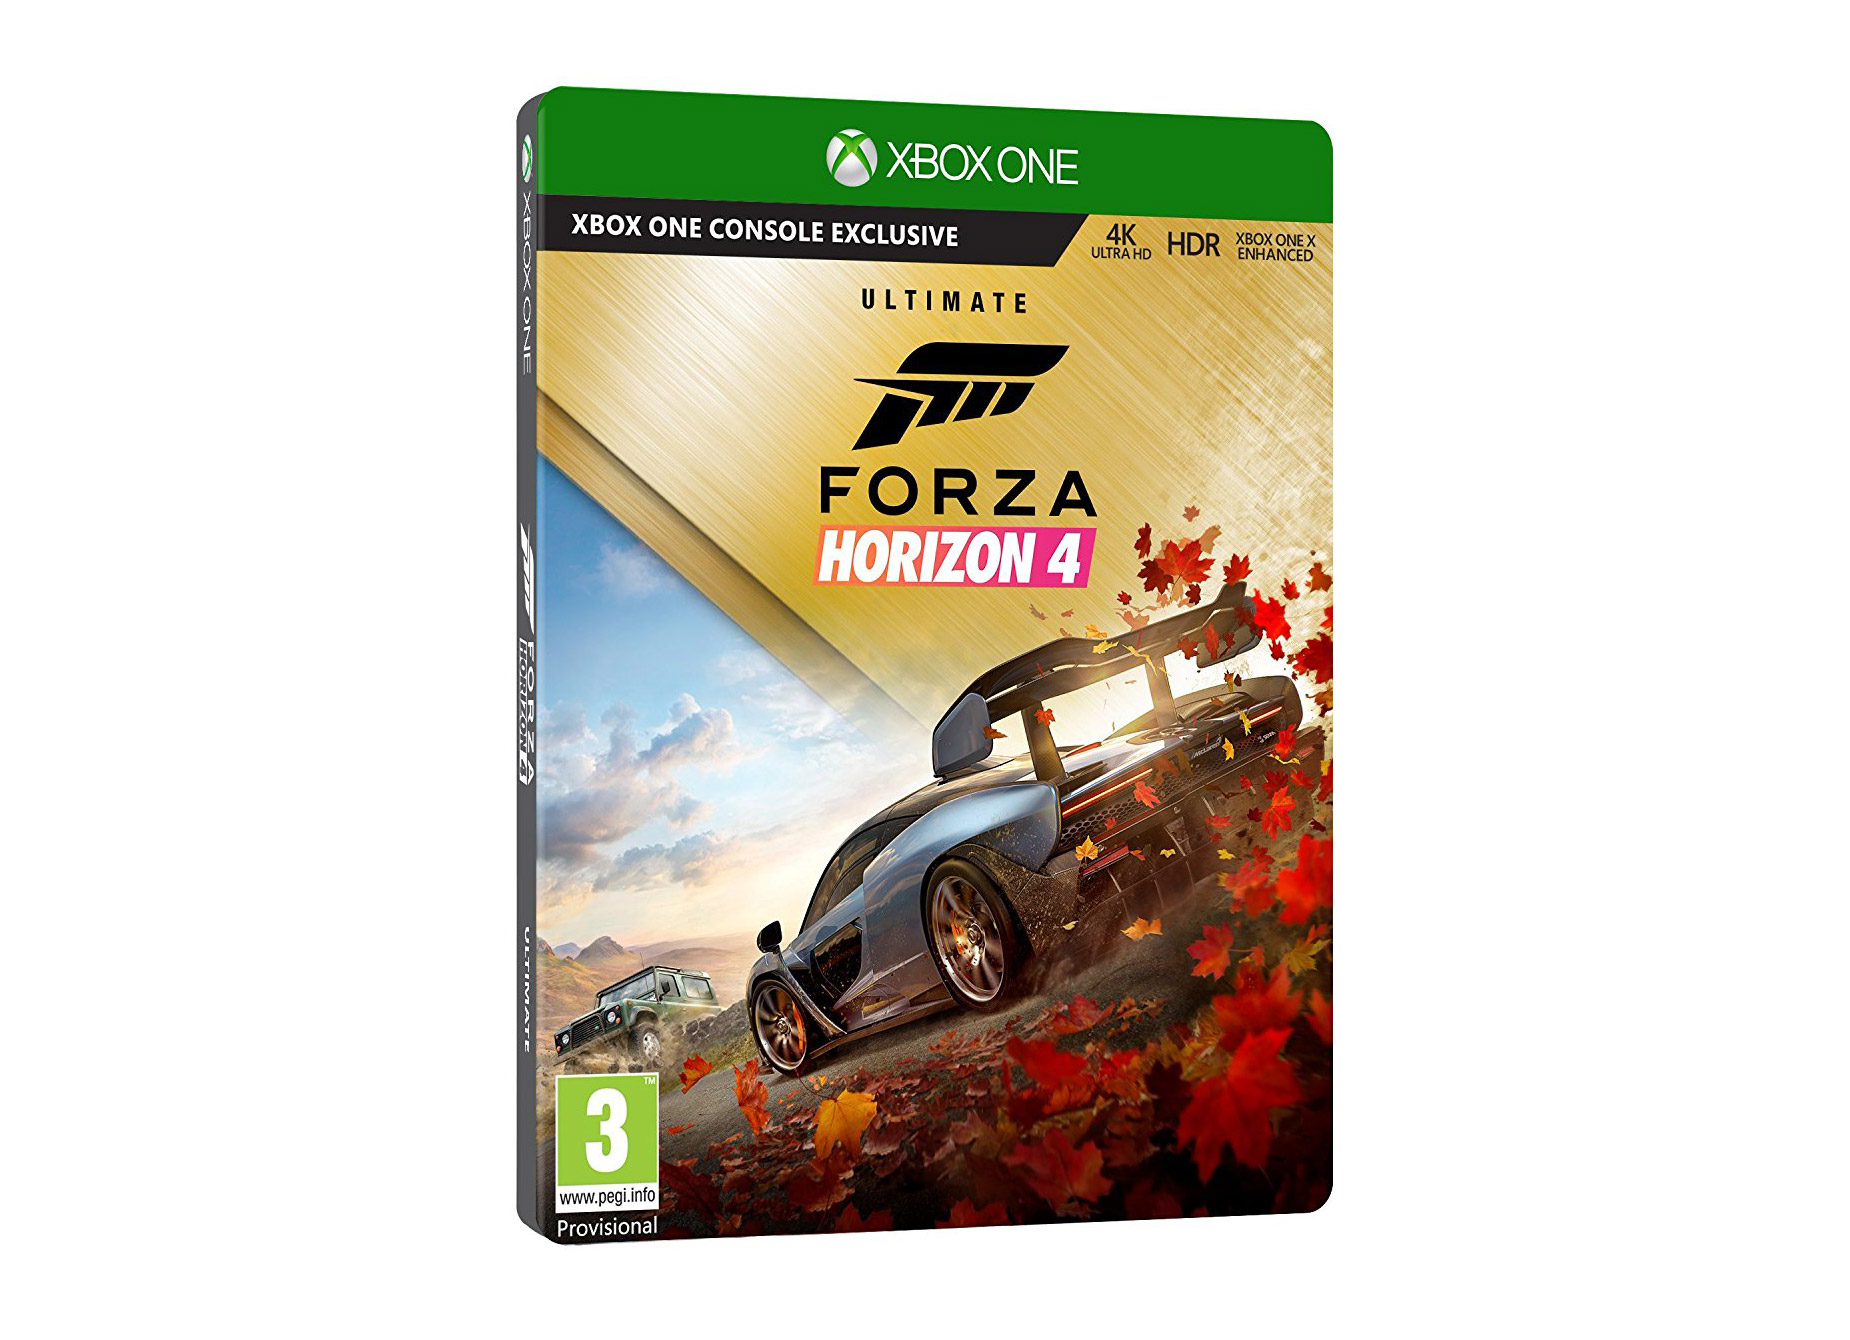 forza horizon 4 ultimate edition kolekcjonerki. Black Bedroom Furniture Sets. Home Design Ideas